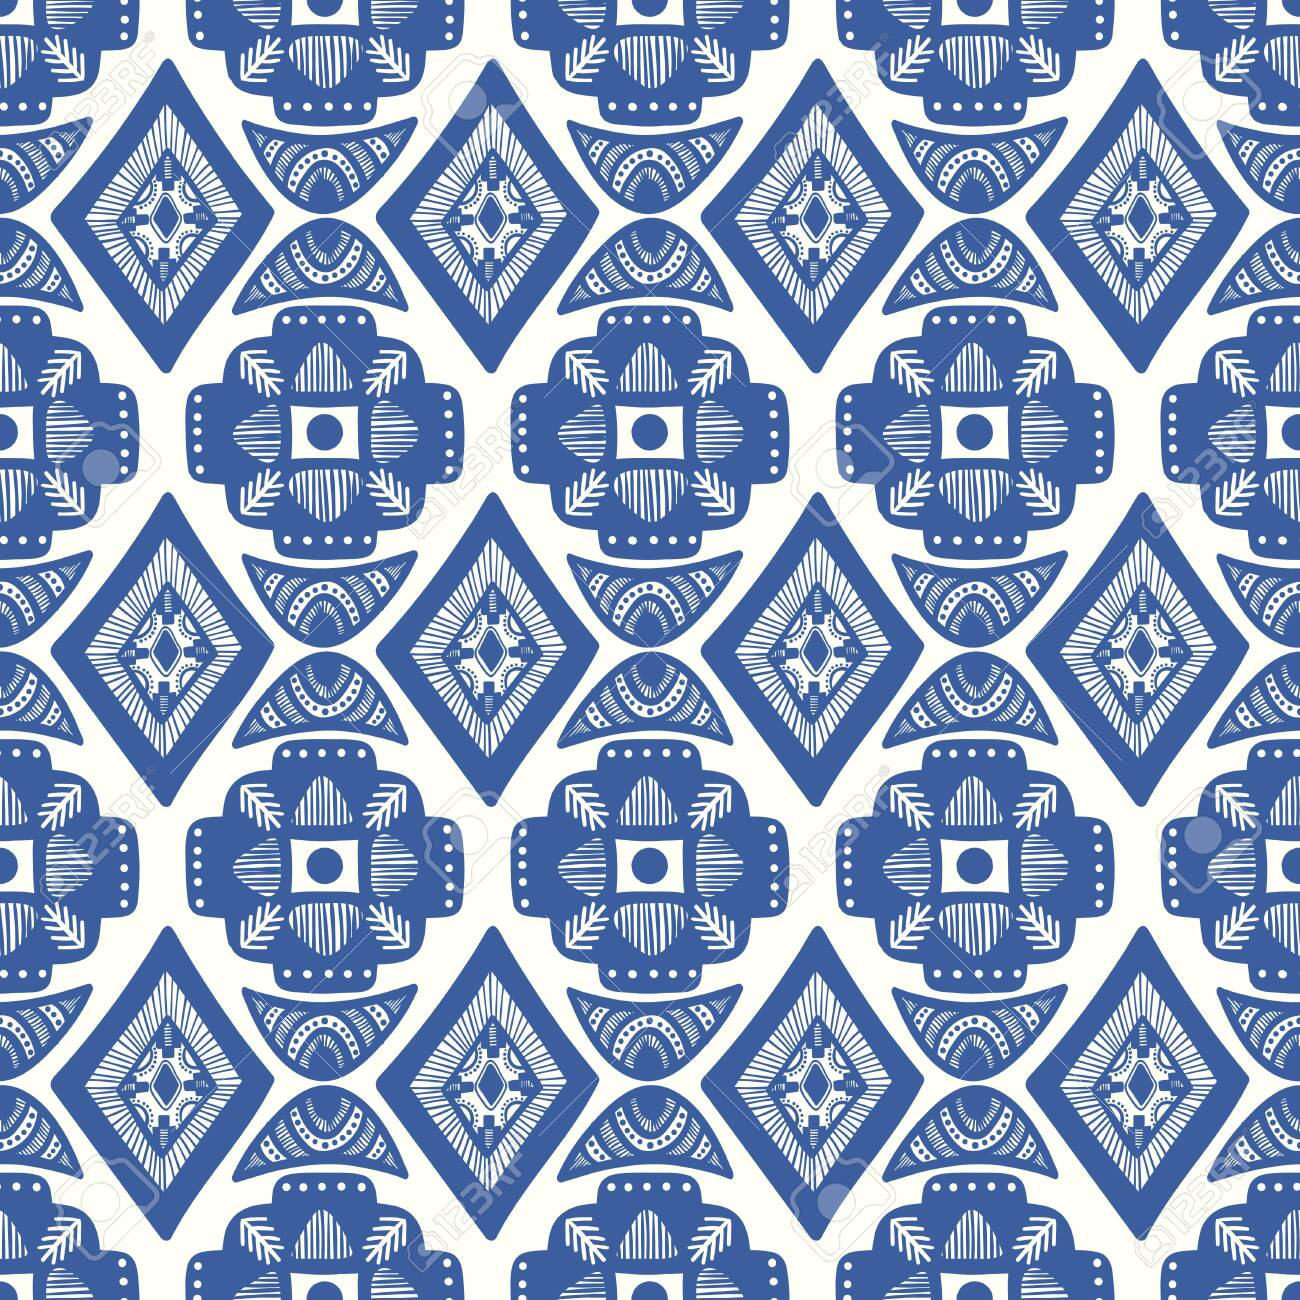 vector blue ethnic square rhombus and crescent moon seamless pattern on white - 142027149